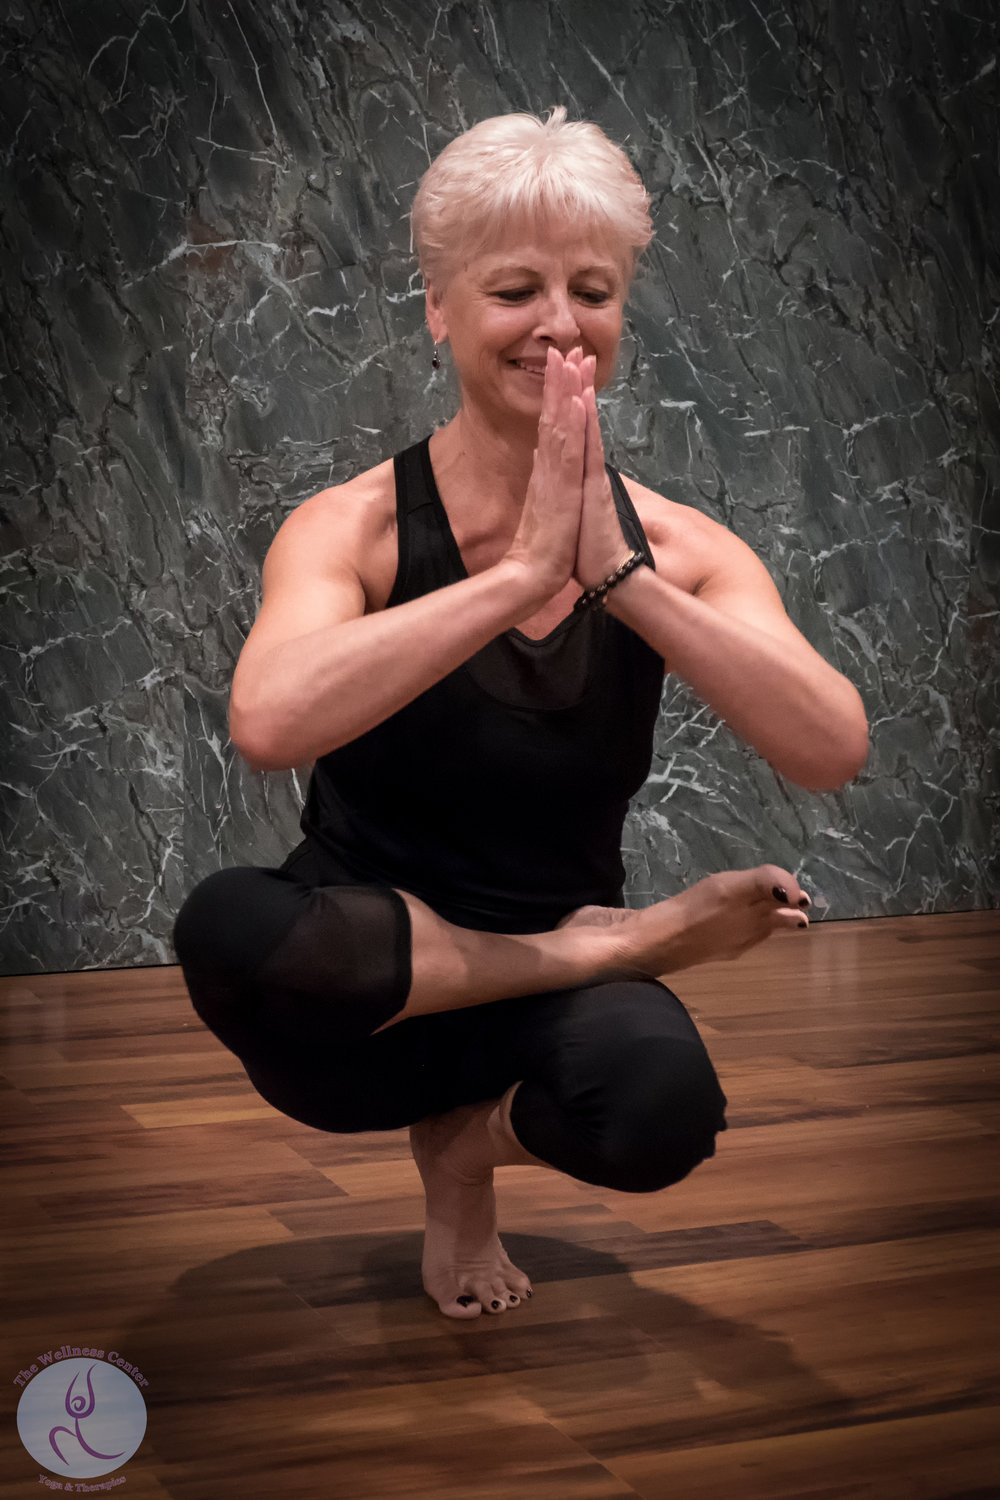 Emily Slonina, Yoga Instructor, Sound Healer & Reiki Master  Specialty Certifications: Advanced Yoga Wall, Chair Yoga, Sound Healing, Aerial Yoga, Certified Yoga Therapist, Reiki Master  Yoga Wall Tuesdays @ 10:00 AM  The Wellness Center YTT Faculty Member